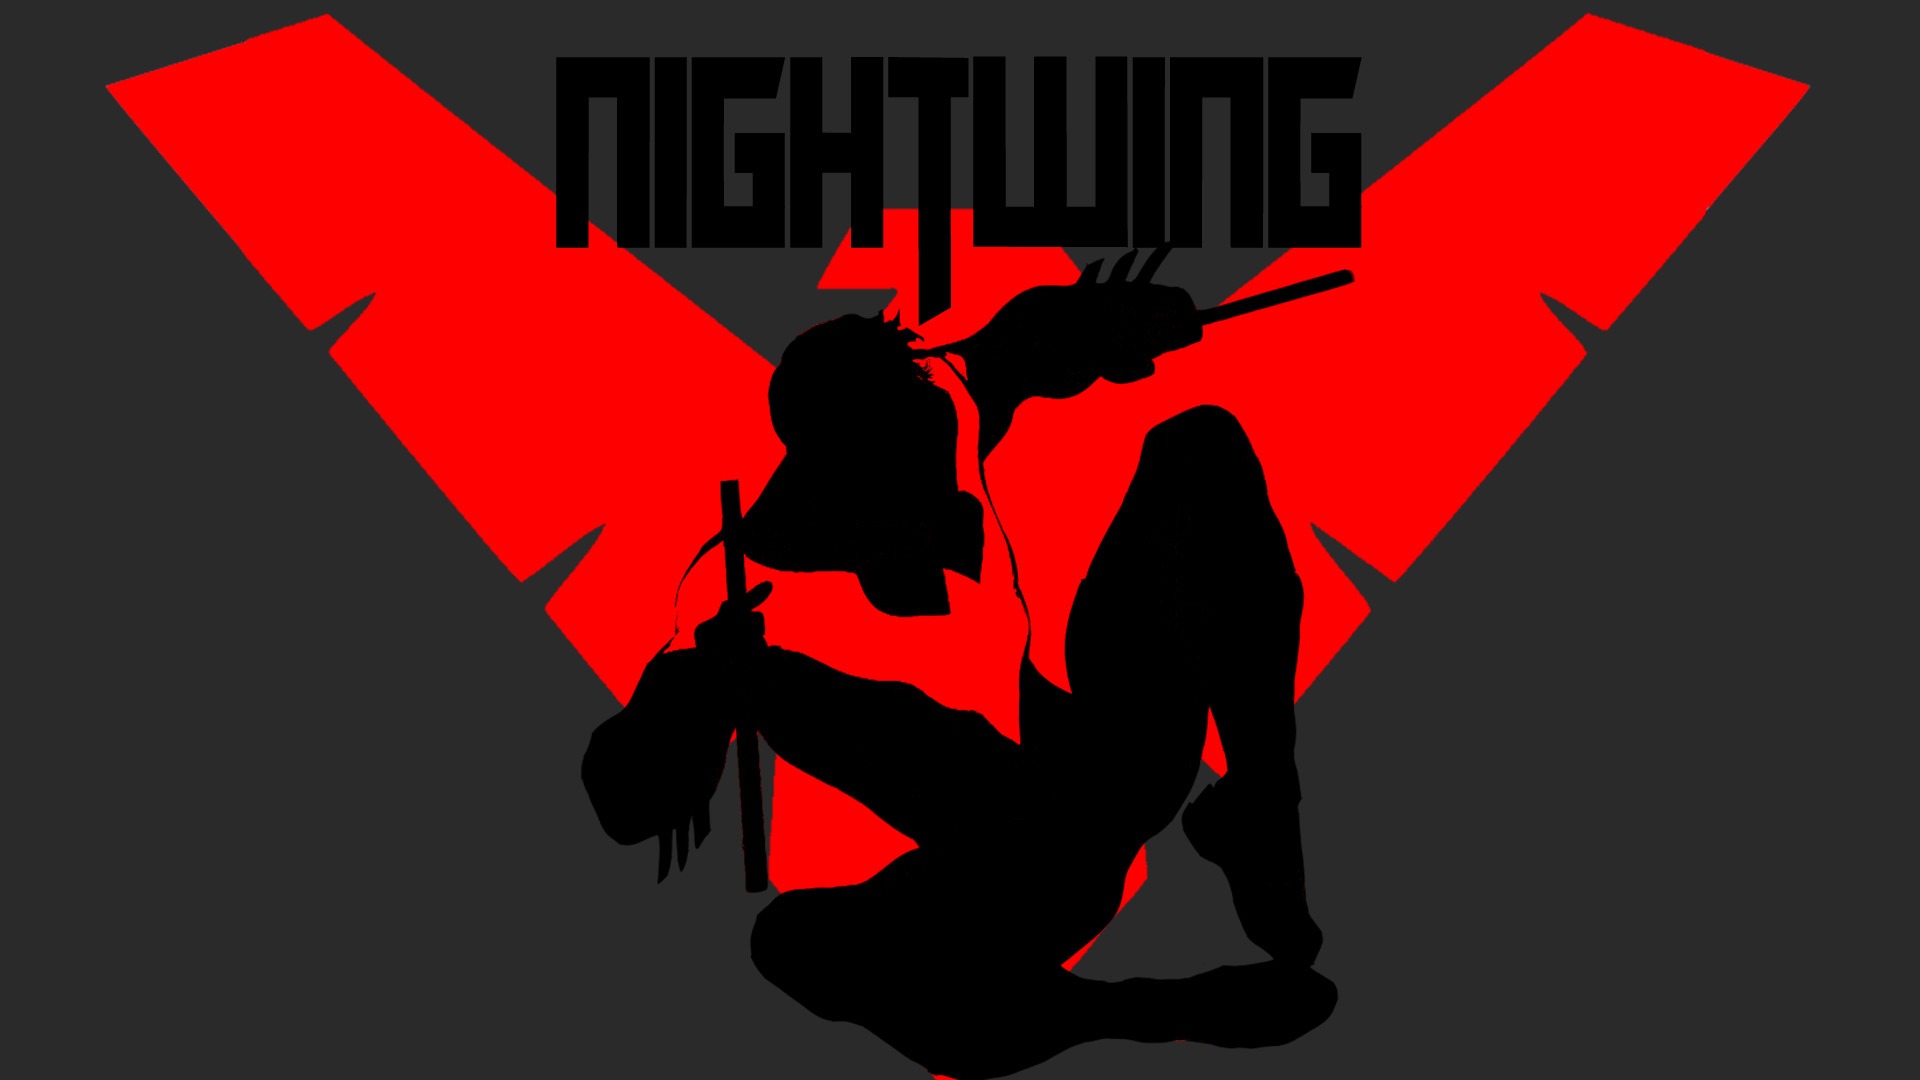 1920x1080 Nightwing Symbol Wallpaper Nightwing pop-art wallpaper by